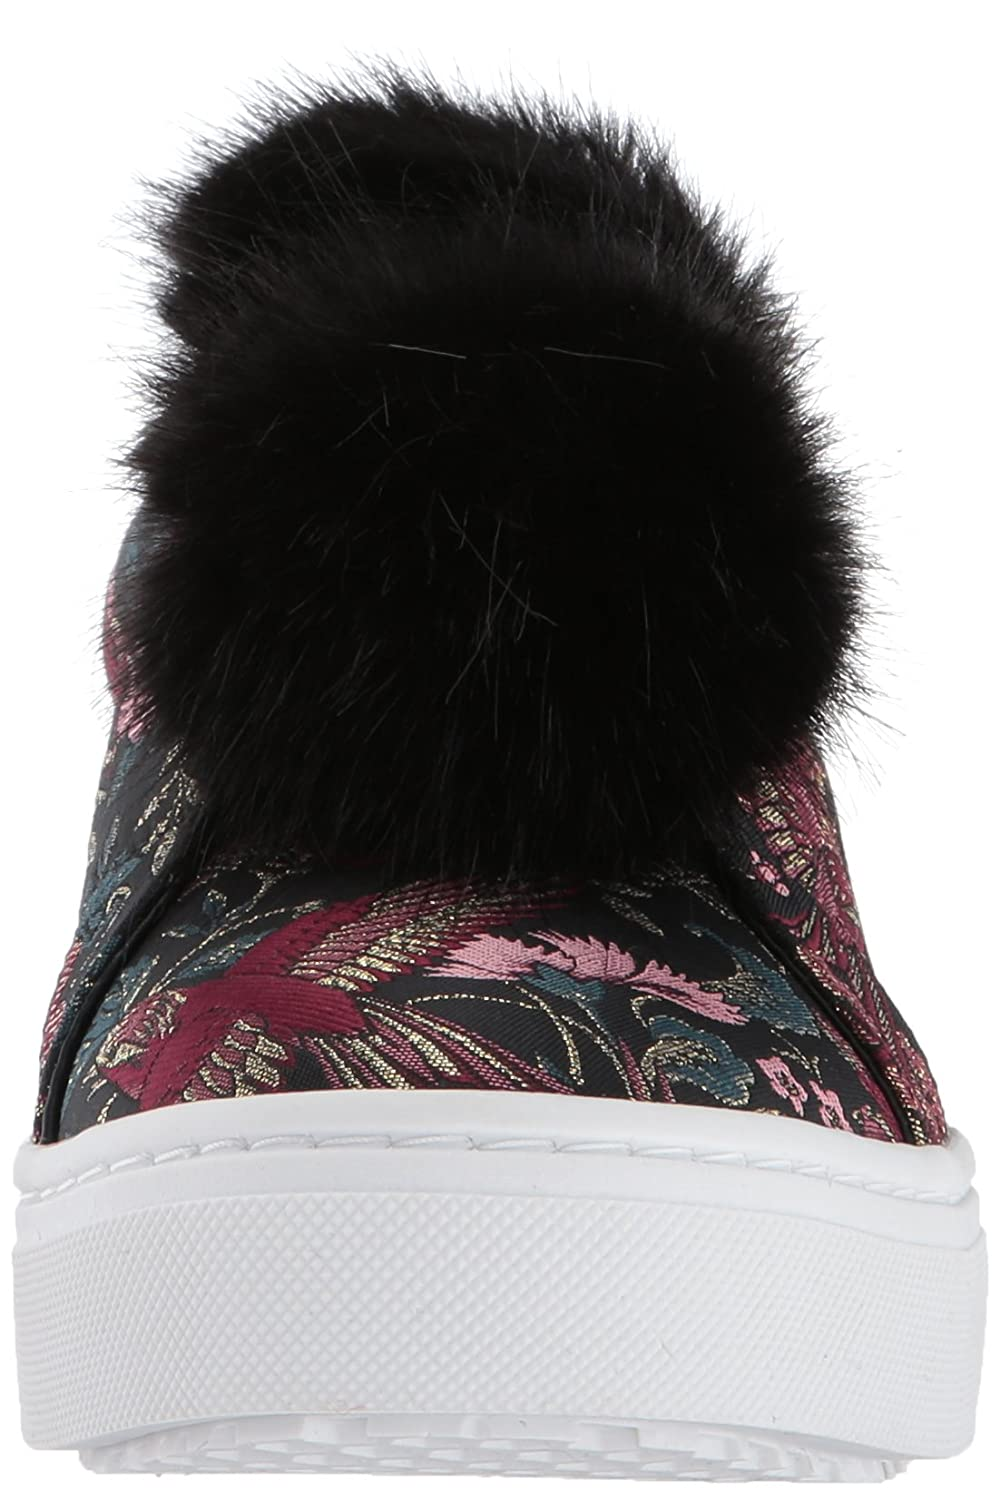 91af797e6443ce Sam Edelman Women s Leya Sneaker  Amazon.co.uk  Shoes   Bags